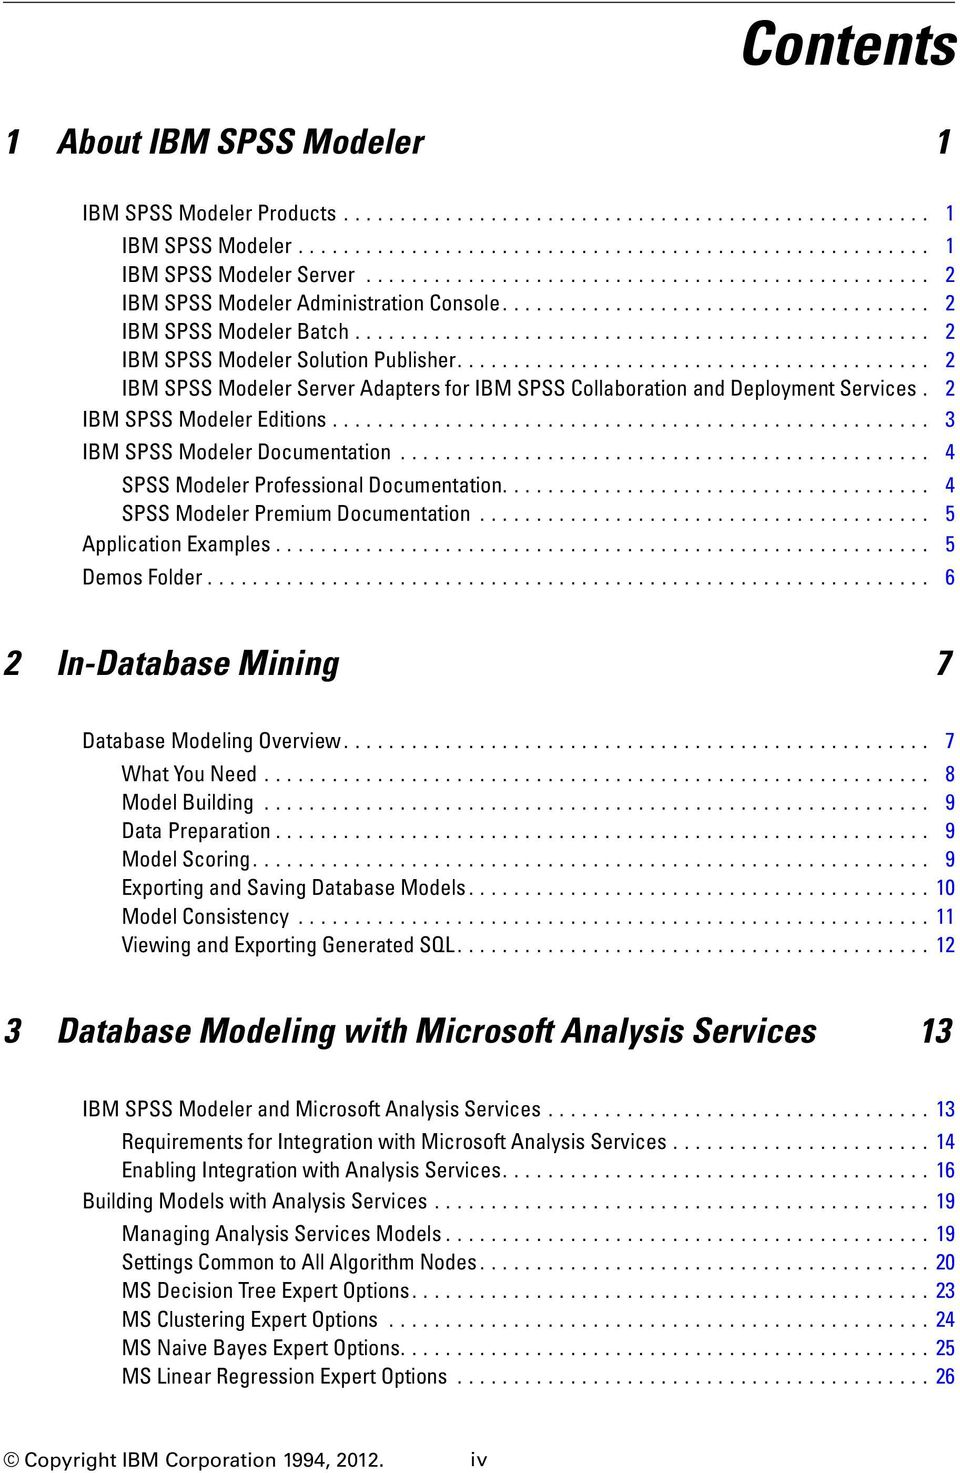 ......................................... 2 IBM SPSS Modeler Server Adapters for IBM SPSS Collaboration and Deployment Services. 2 IBM SPSS Modeler Editions..................................................... 3 IBM SPSS Modeler Documentation.